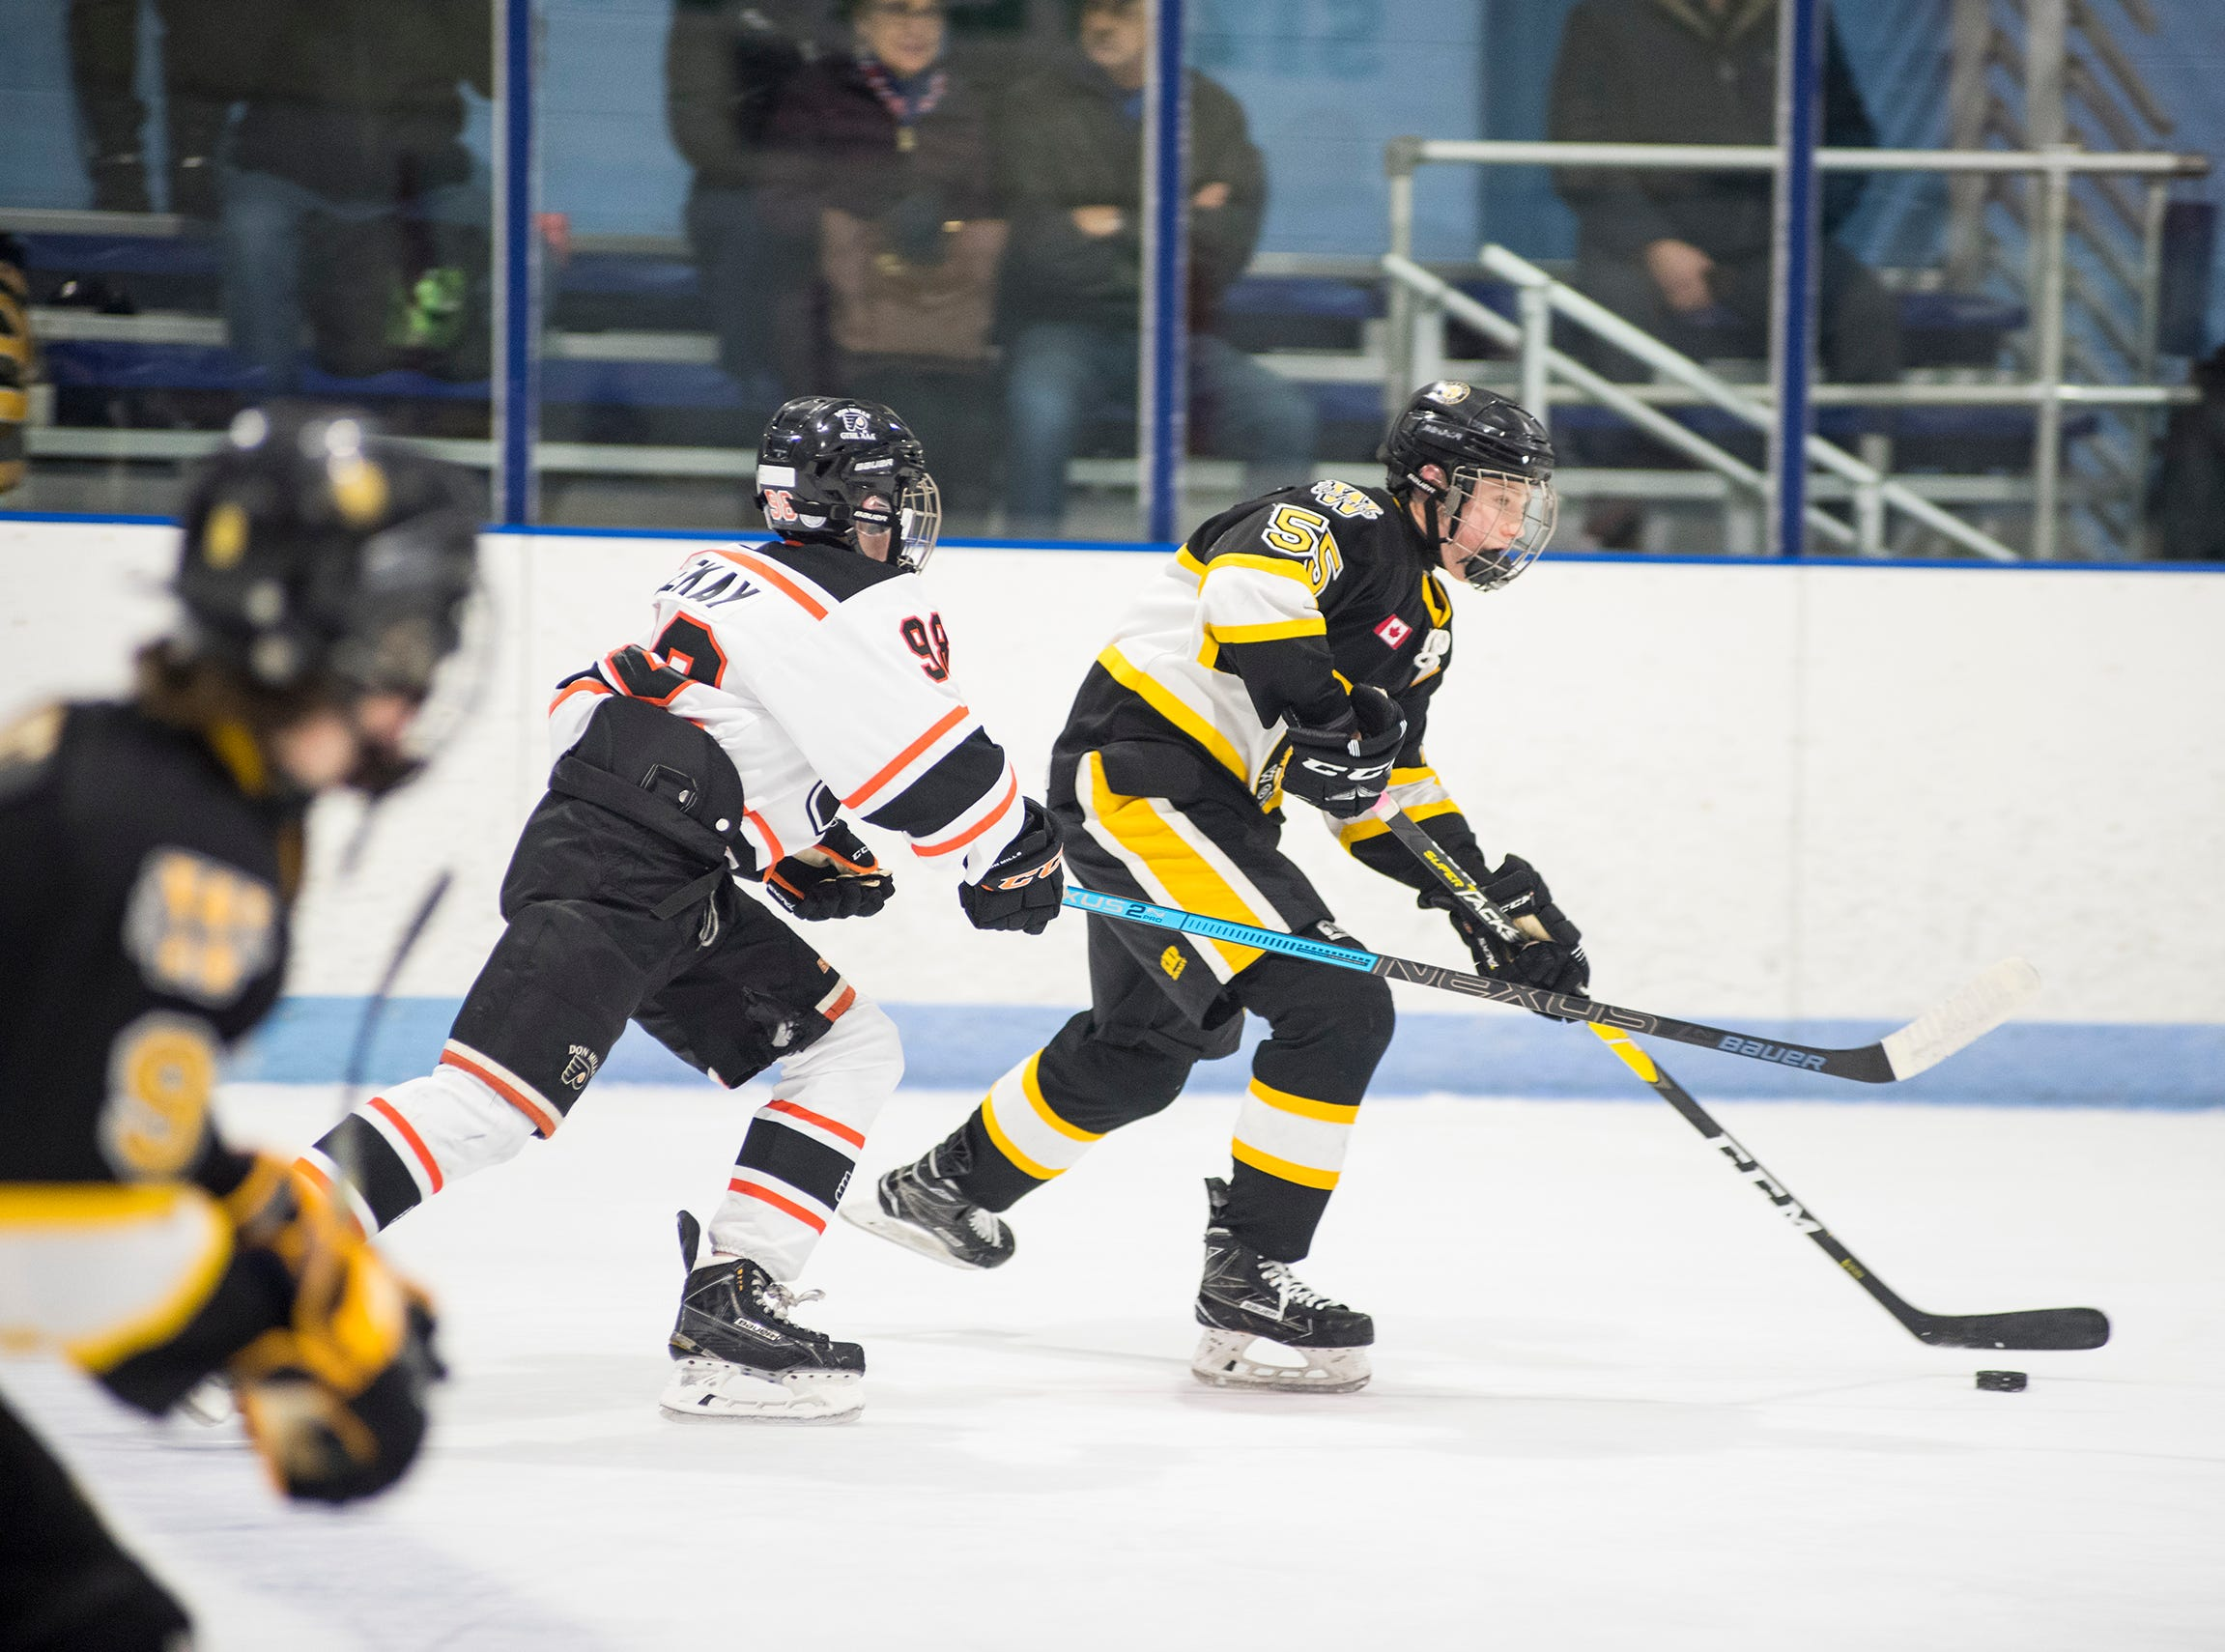 A Don Mills Flyers player reaches to steal the puck from Waterloo Wolves forward Hunter Nagge (55) during their BAAA-A Silver Stick Finals match Friday, Jan. 4, 2019 at Glacier Pointe Ice Complex.